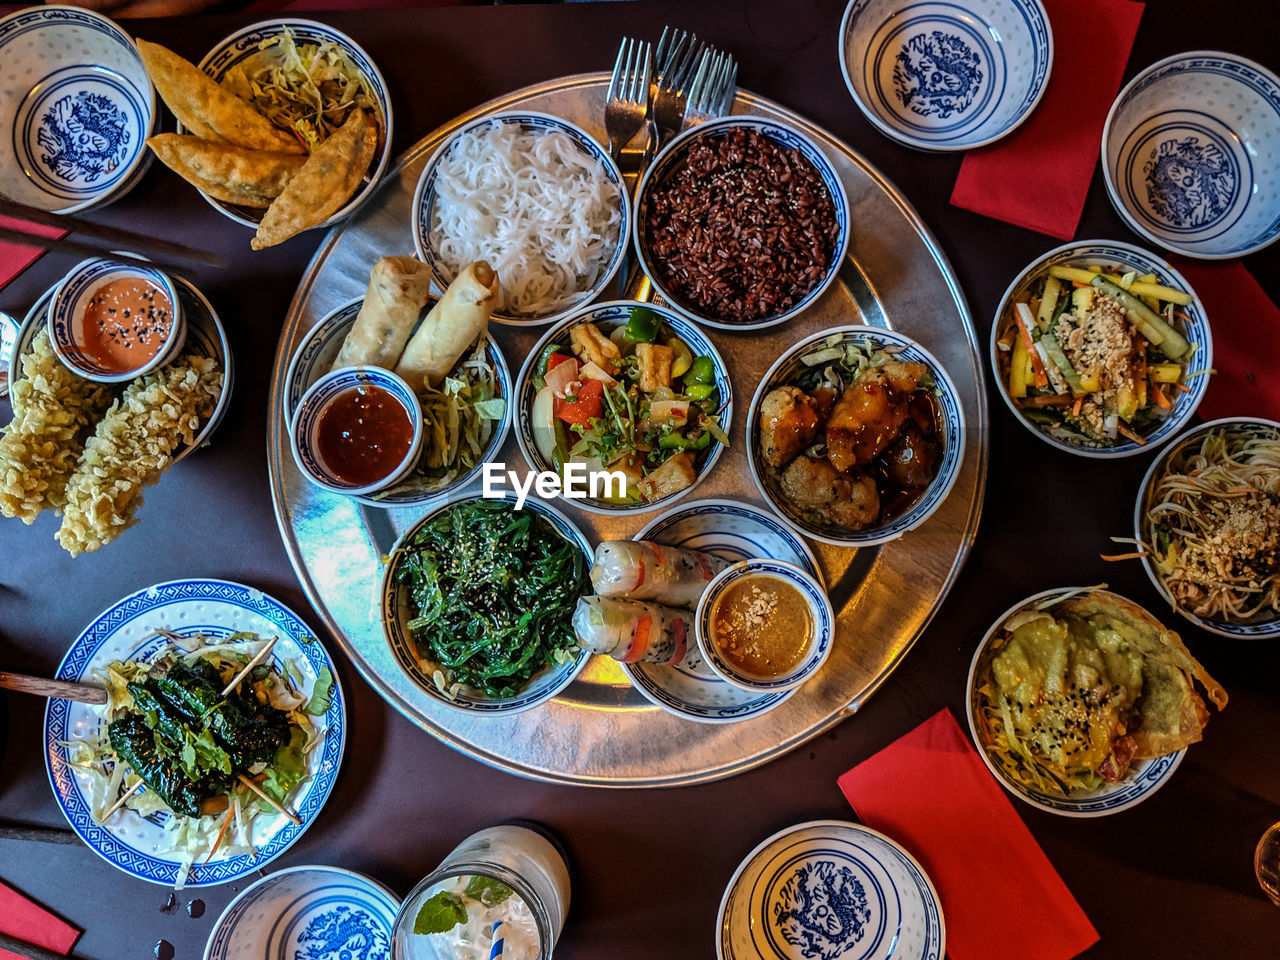 food and drink, table, food, bowl, choice, freshness, high angle view, variation, indoors, ready-to-eat, healthy eating, wellbeing, no people, still life, plate, serving size, meal, large group of objects, directly above, vegetable, garnish, chinese food